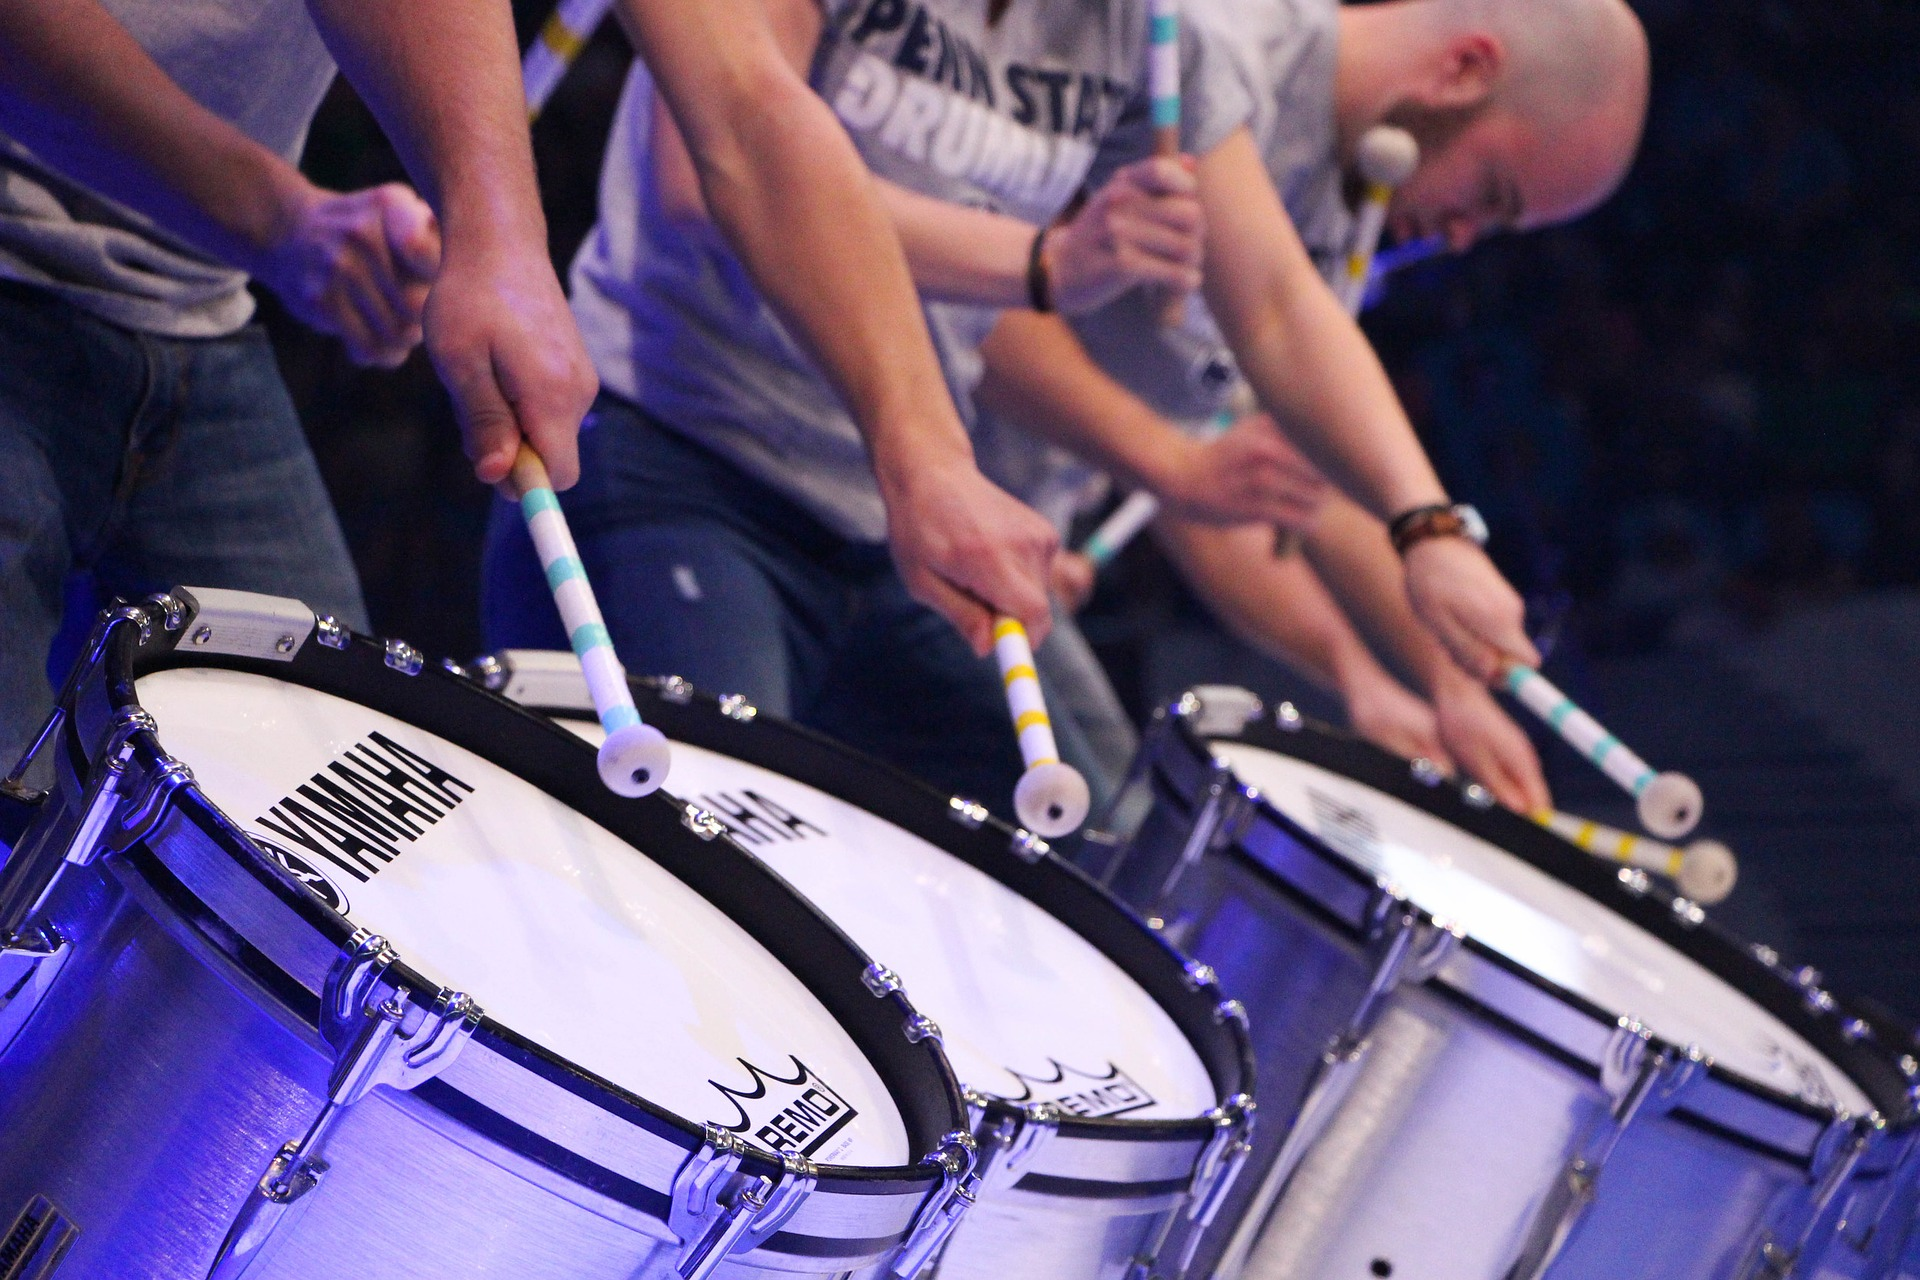 band extracurriculars for med school